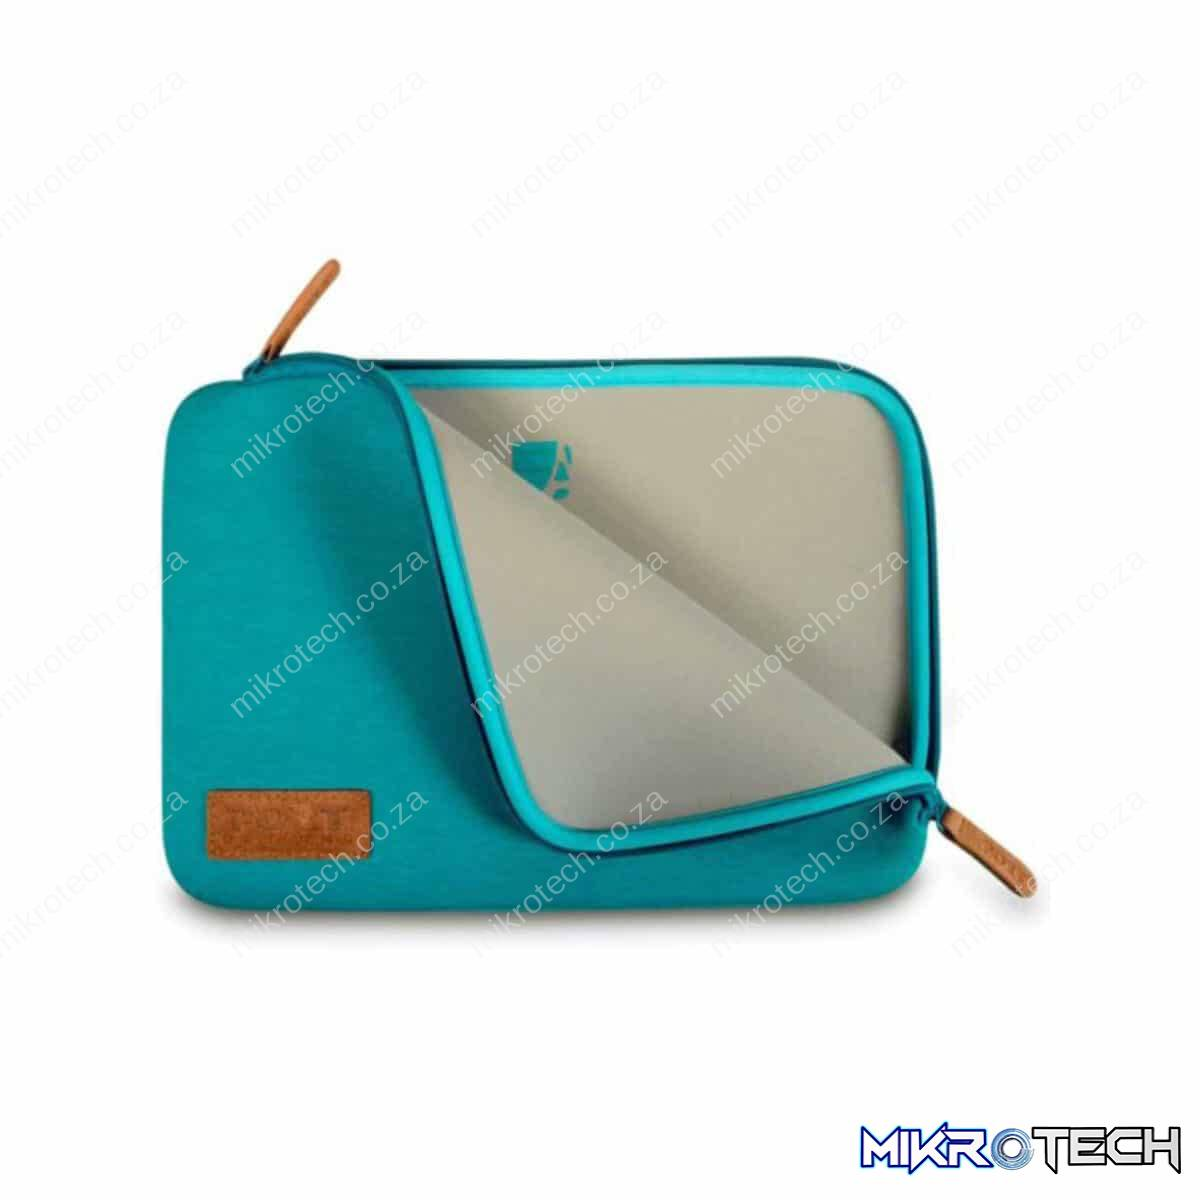 PORT NOTEBOOK SLEEVE TORINO TURQUOISE 13 INCH 1 YEAR CARRY IN WARRANTY